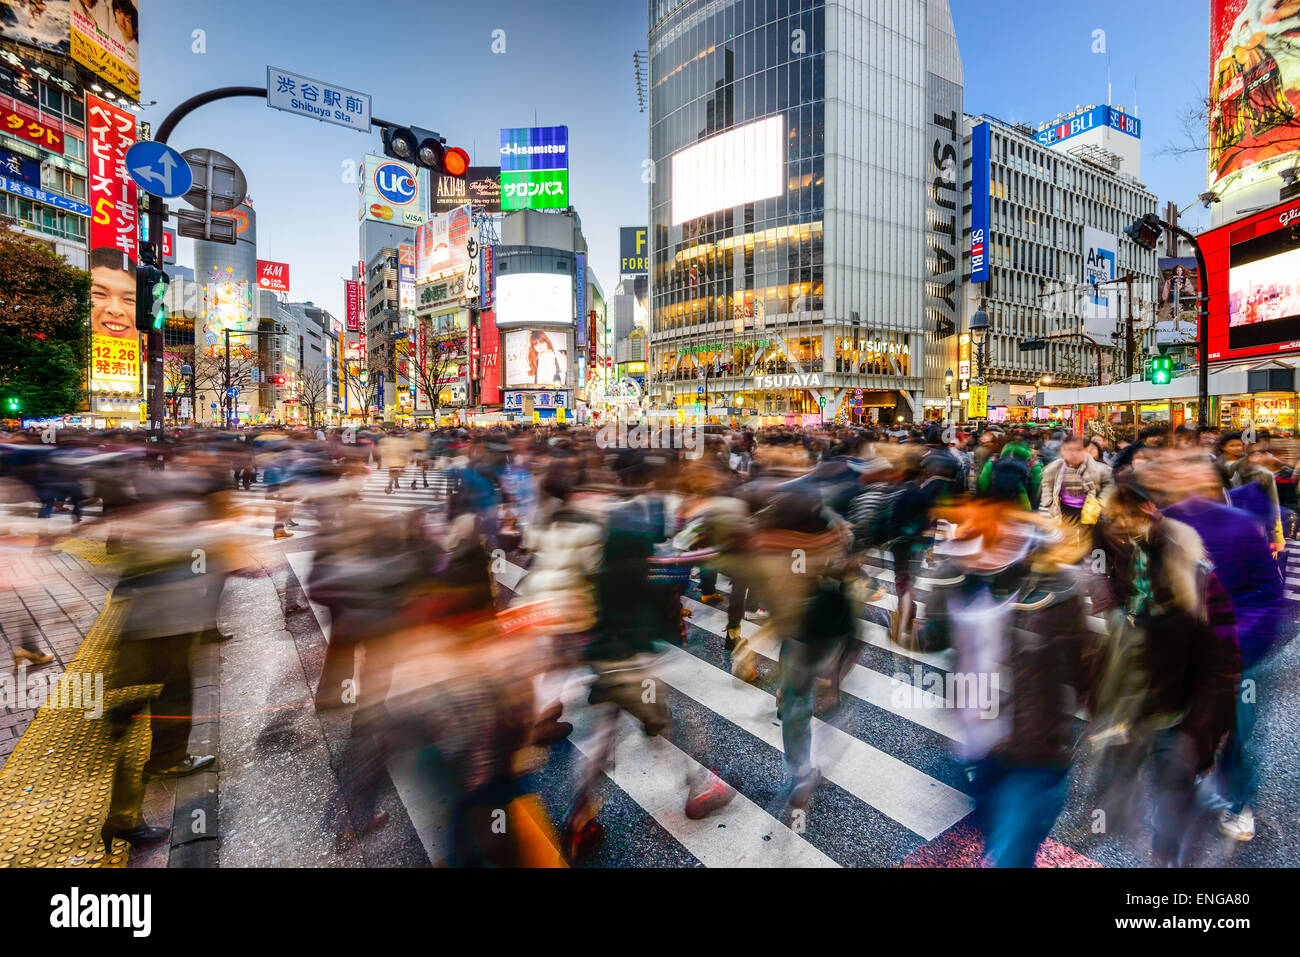 Pedestrians walk at Shibuya Crossing during the holiday season. The scramble crosswalk is one of the largest in - Stock Image